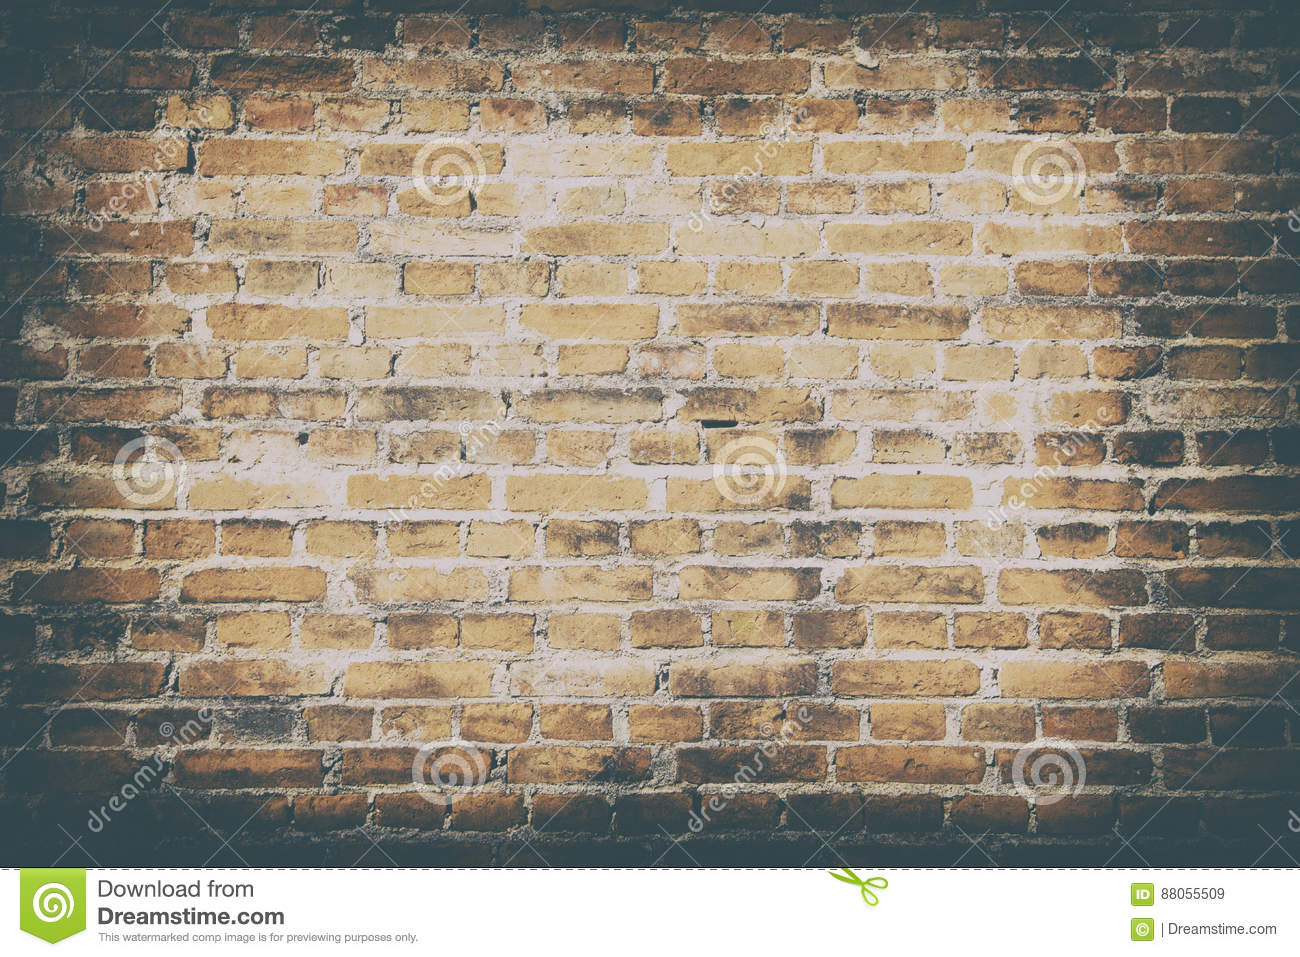 Background of dirty old wall brick texture wallpaper